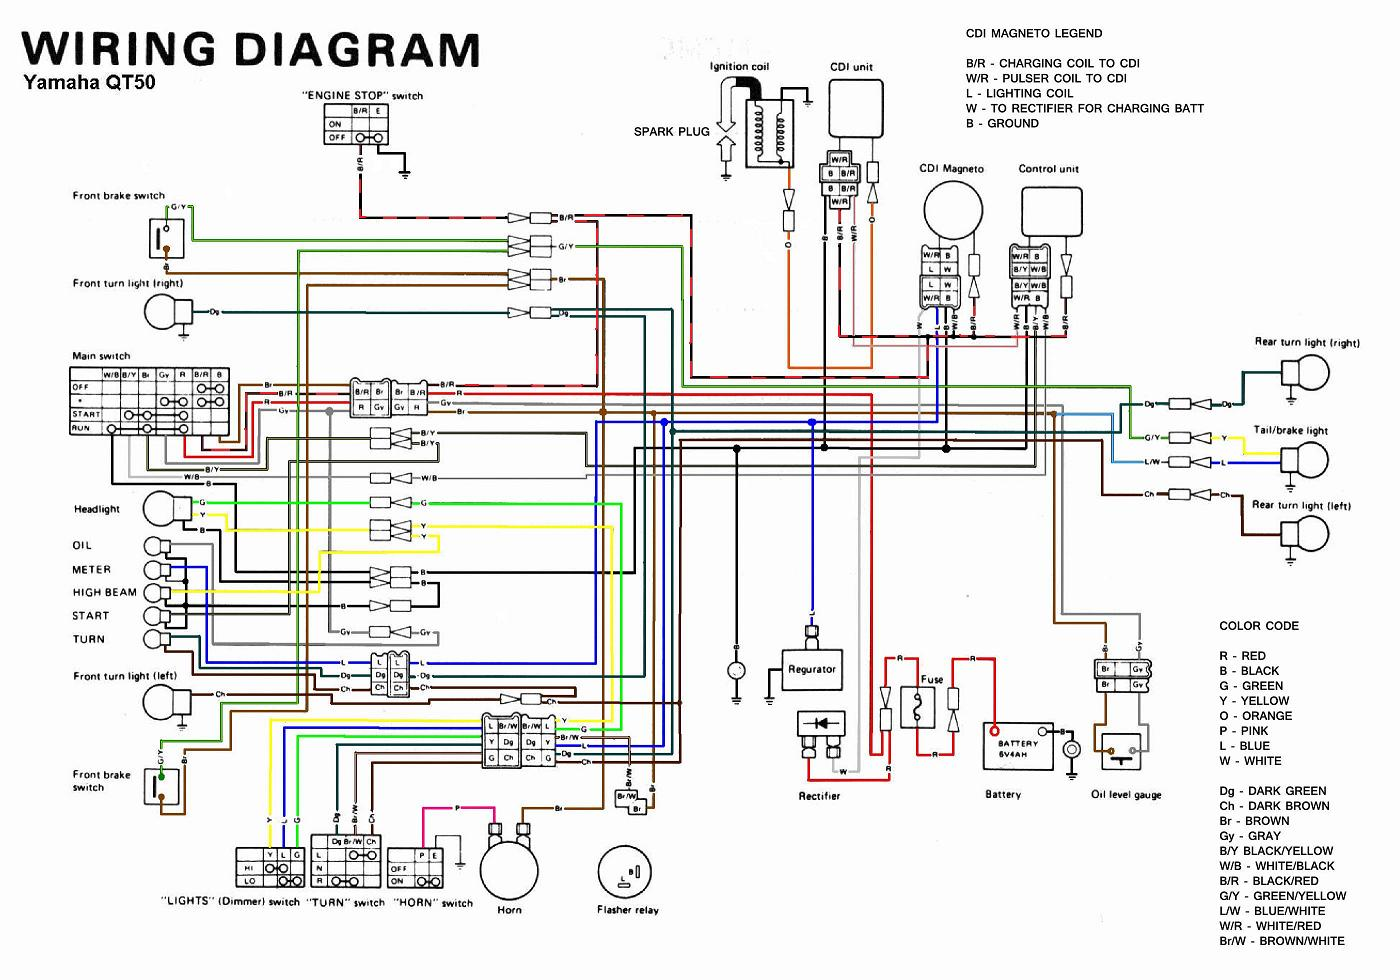 Yamaha QT50 Wiring Diagram yamaha qt50 wiring diagram yamaha qt50 luvin and other nopeds 1975 yamaha dt 175 wiring diagram at reclaimingppi.co